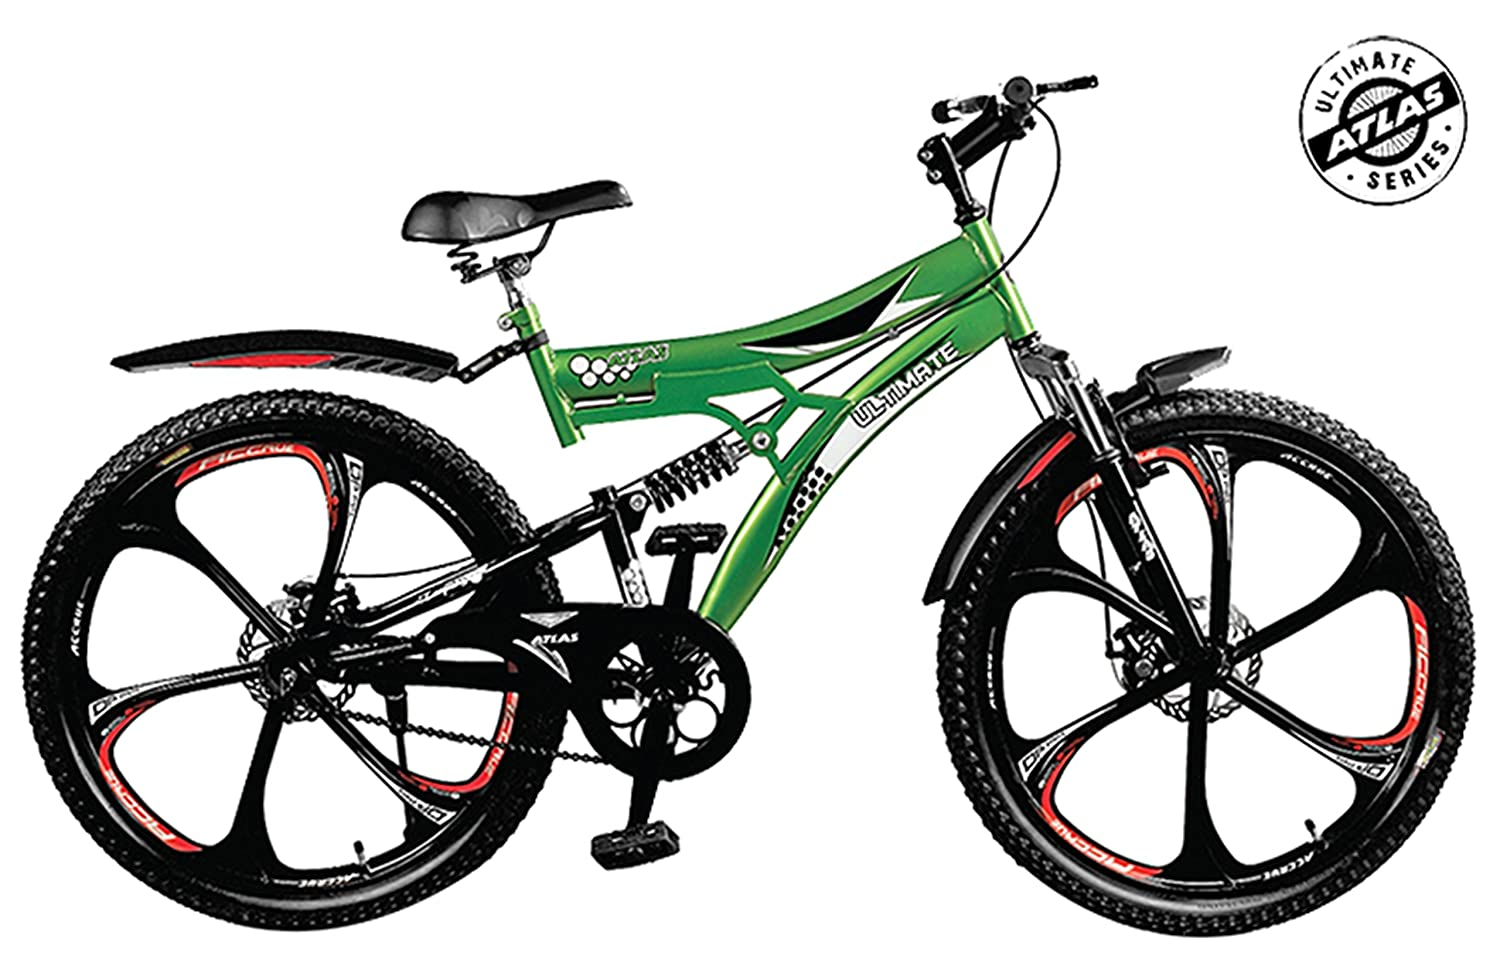 Atlas Torpedo D/Shox and Dual Disc Brake 26T Mountain Cycle(Green/Red)